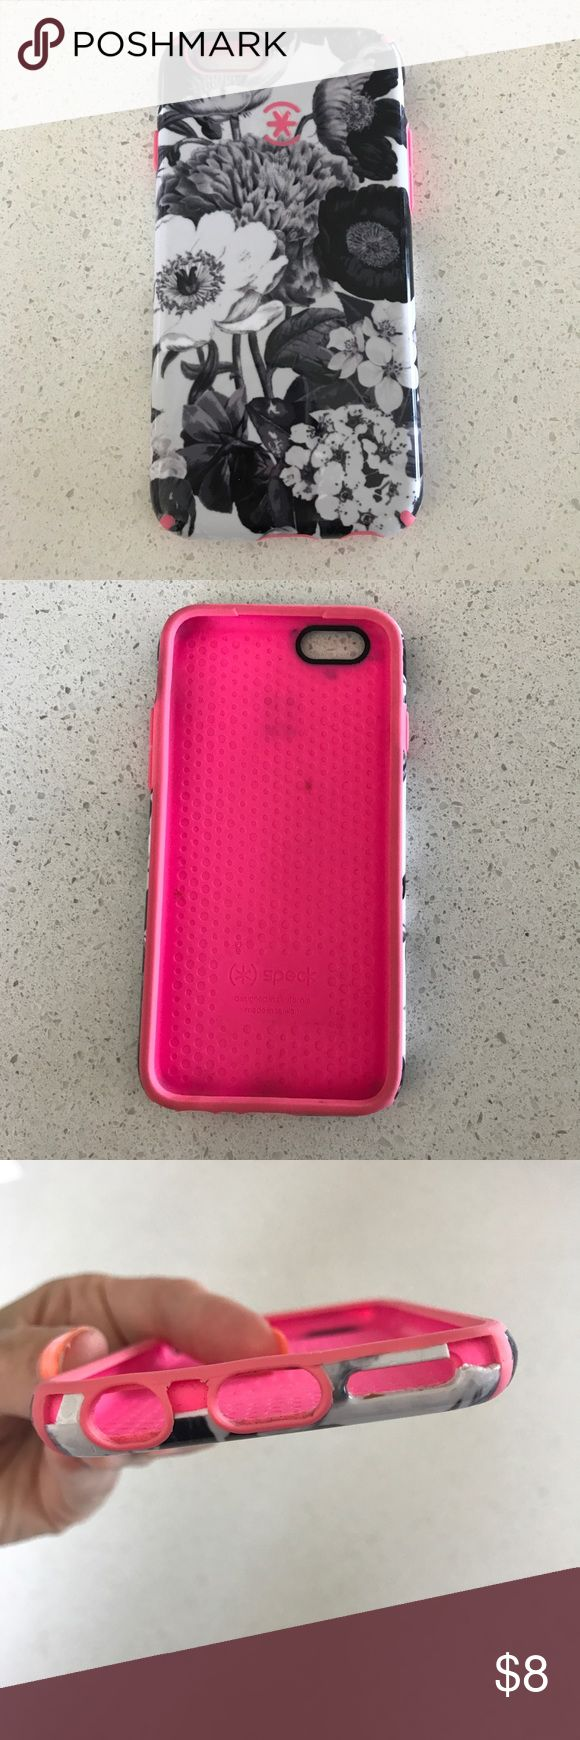 📱 SPECK iPhone 6 Case Used but still has a lot of life left. There is wear on both ends, see pictures. speck Accessories Phone Cases